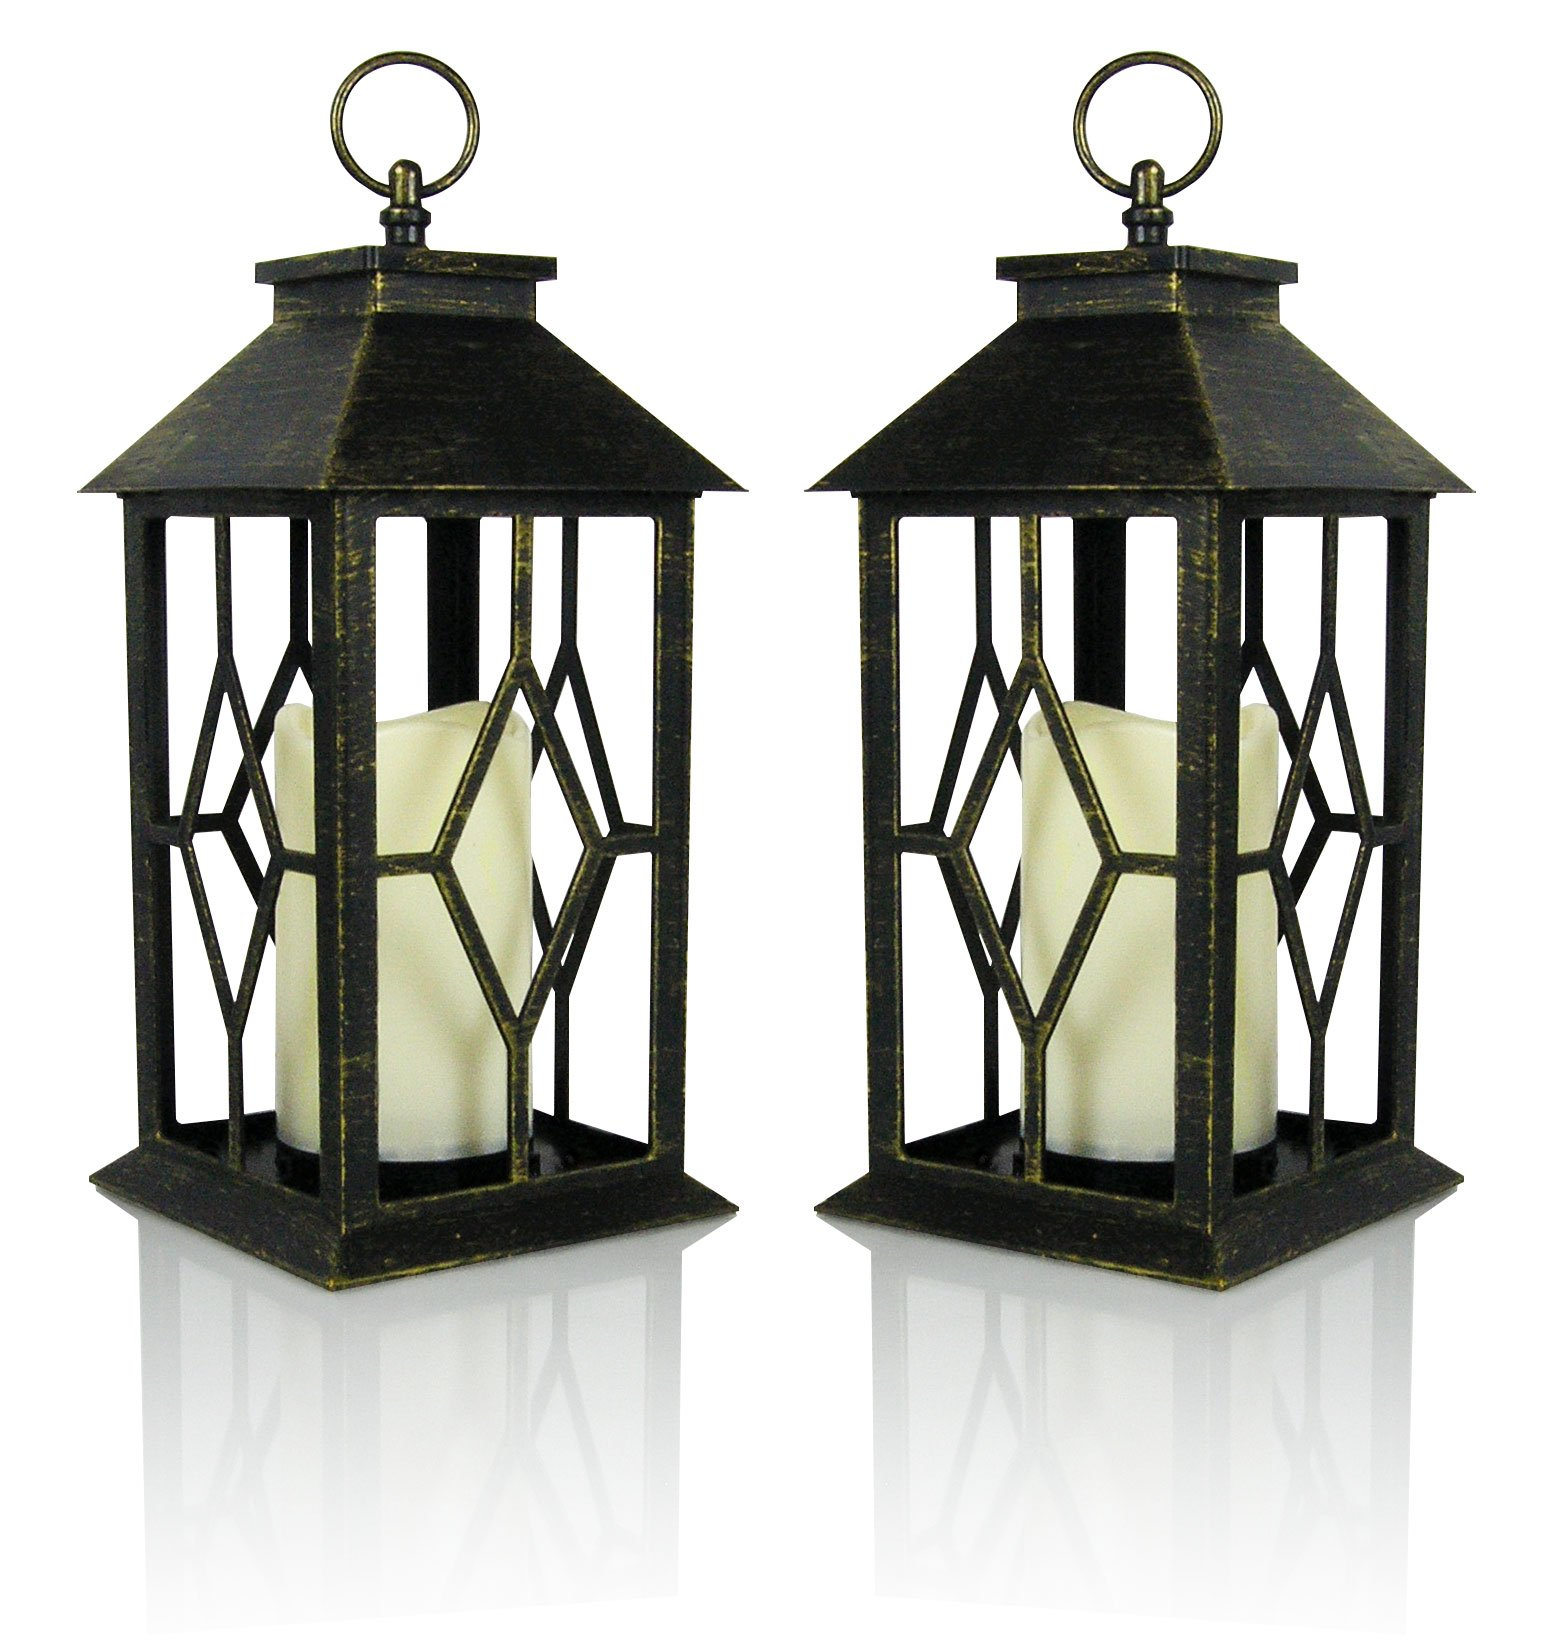 Banberry Designs Decorative Candle Lantern - Set of 2 Brushed Faux Finish Lantern Set - LED Candle Included - 5 Hour Timer